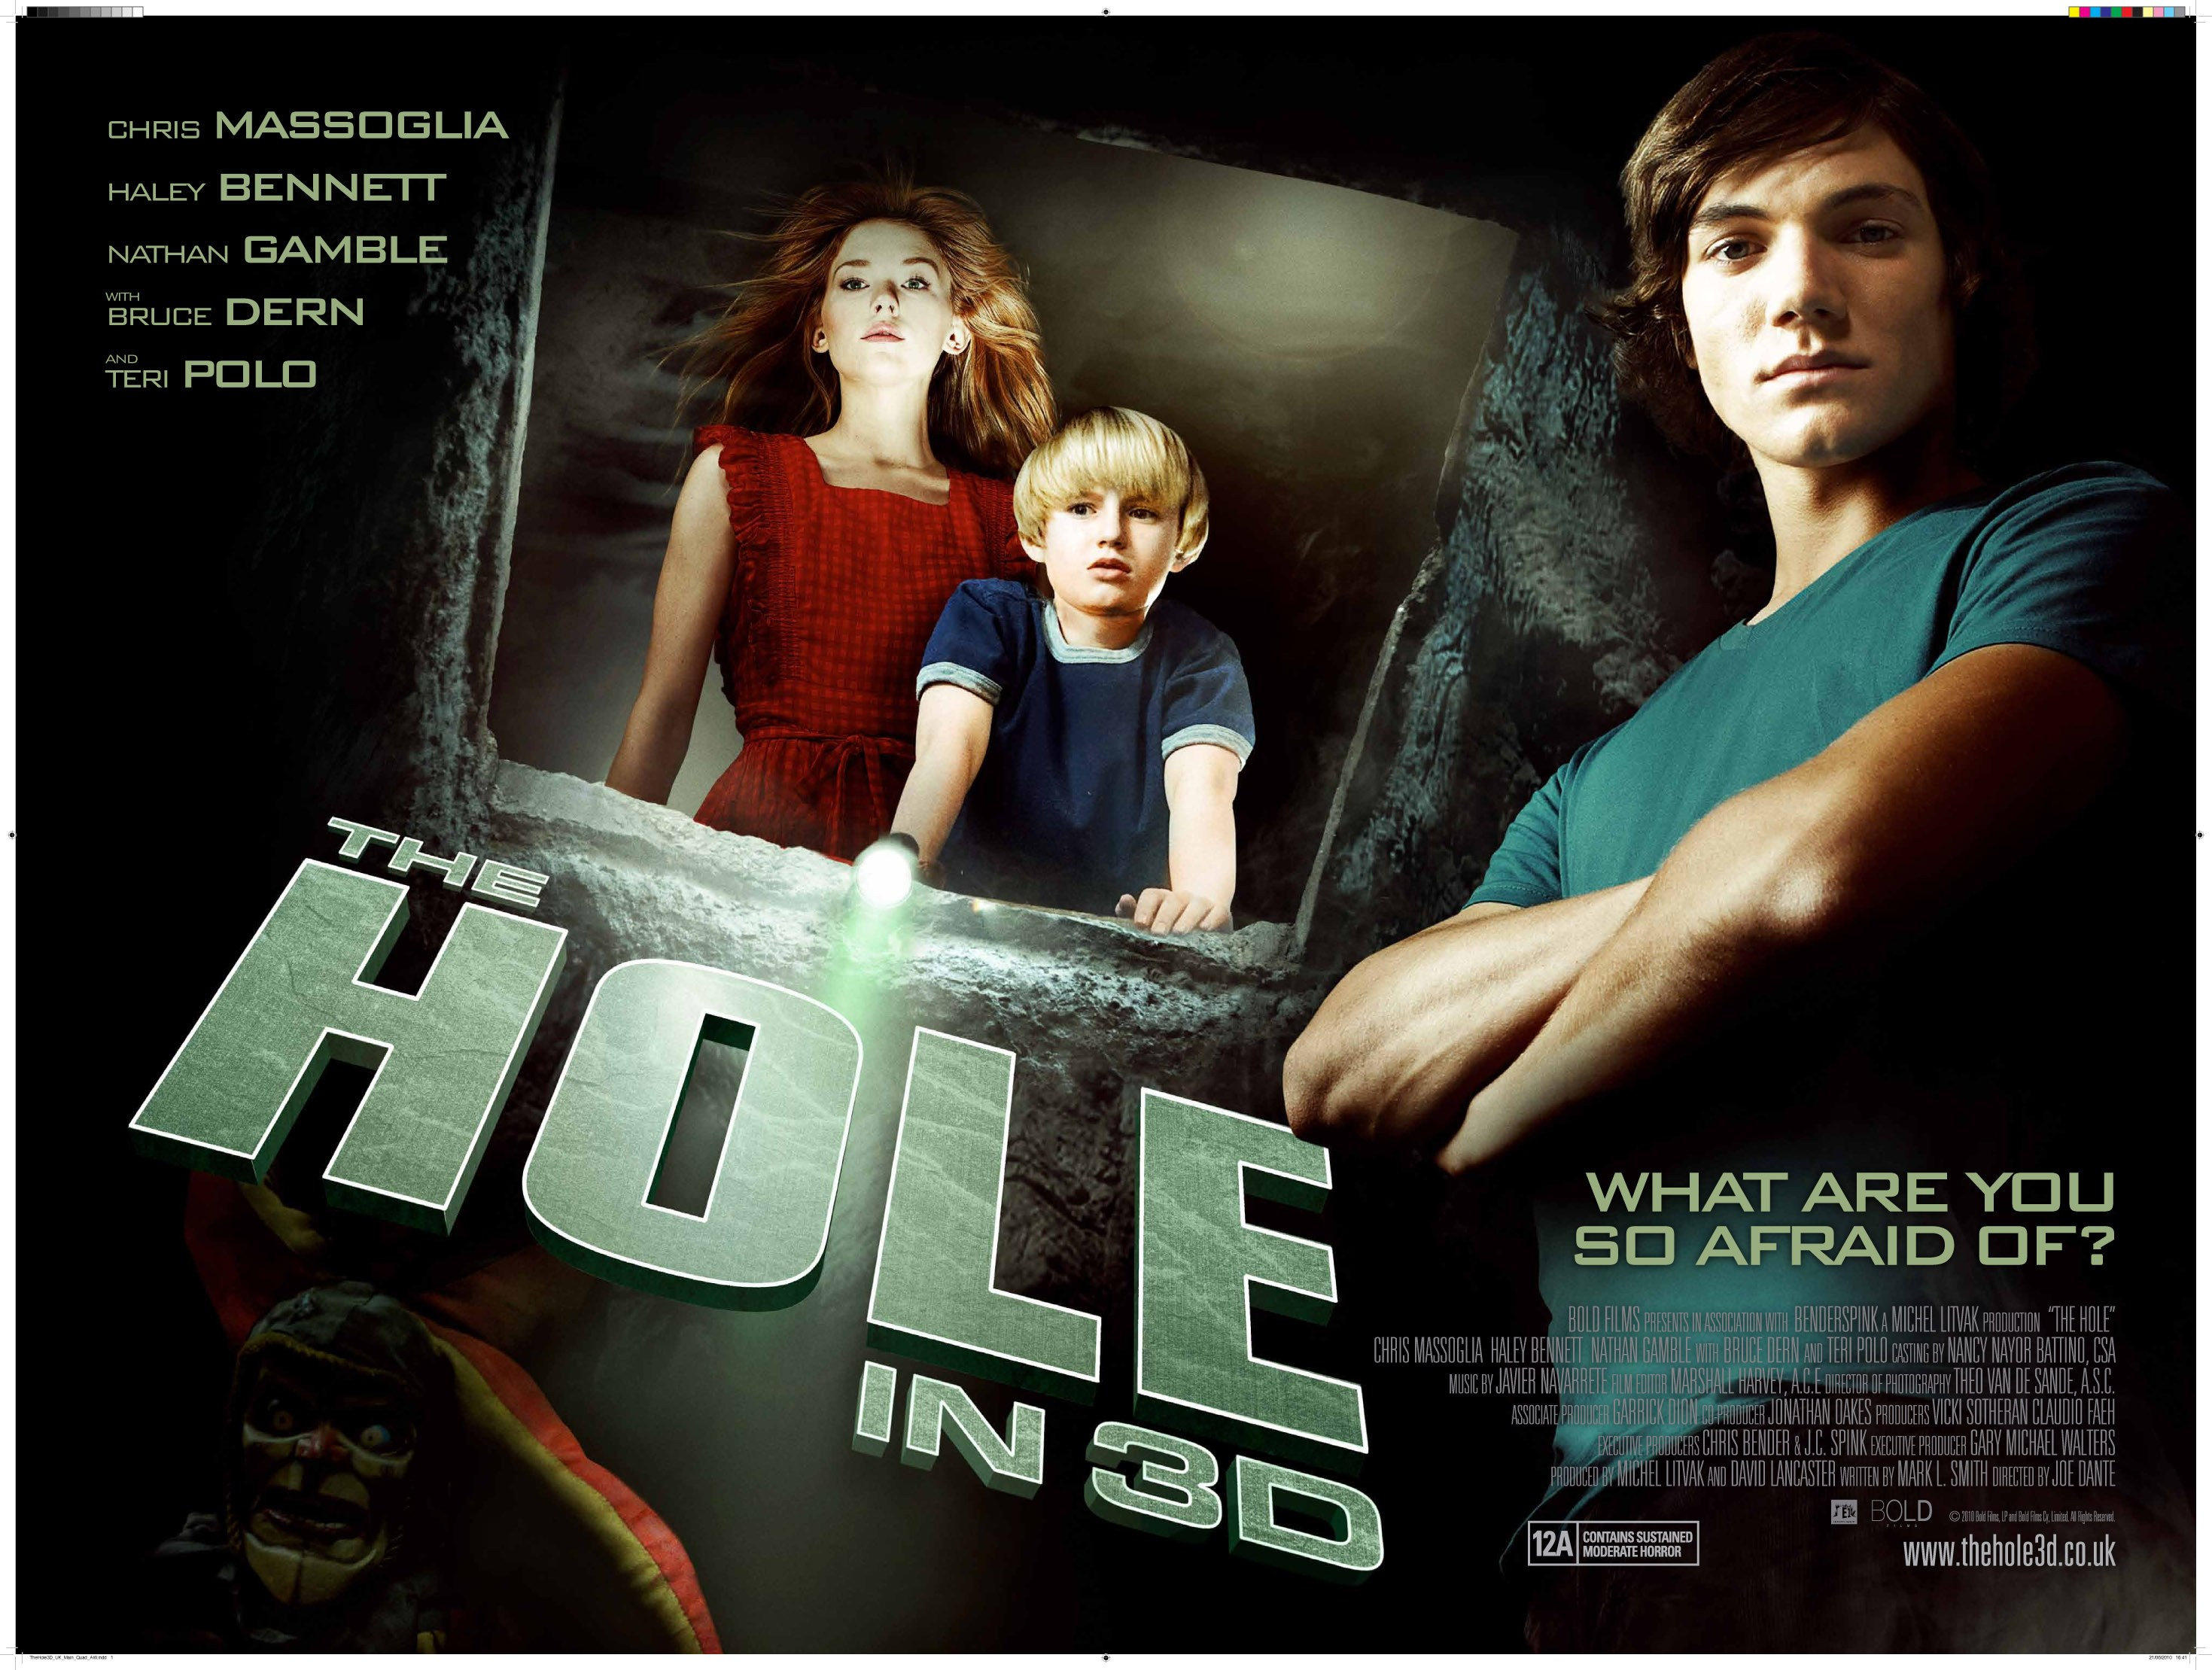 Brand New Poster and Trailer for The Hole 3d - HeyUGuys